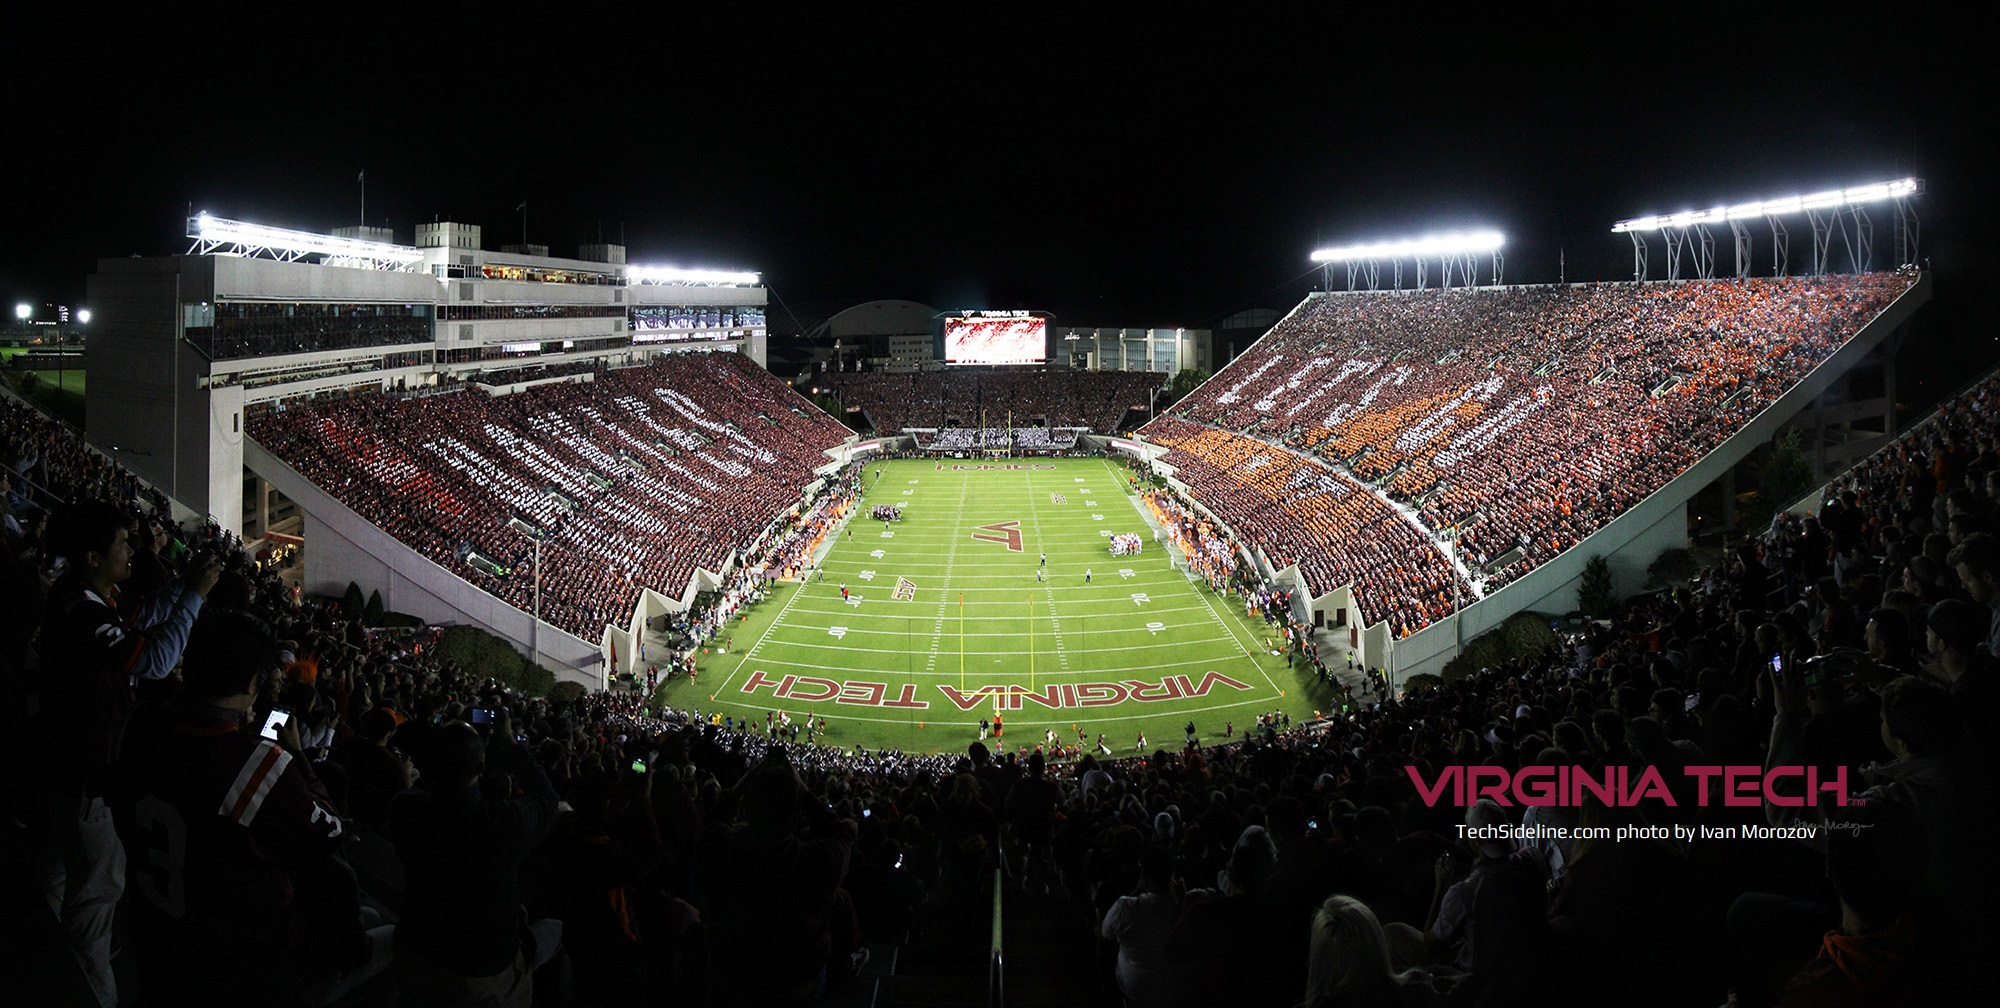 Virginia Tech Announces Unc Game Sold Out Techsideline Com